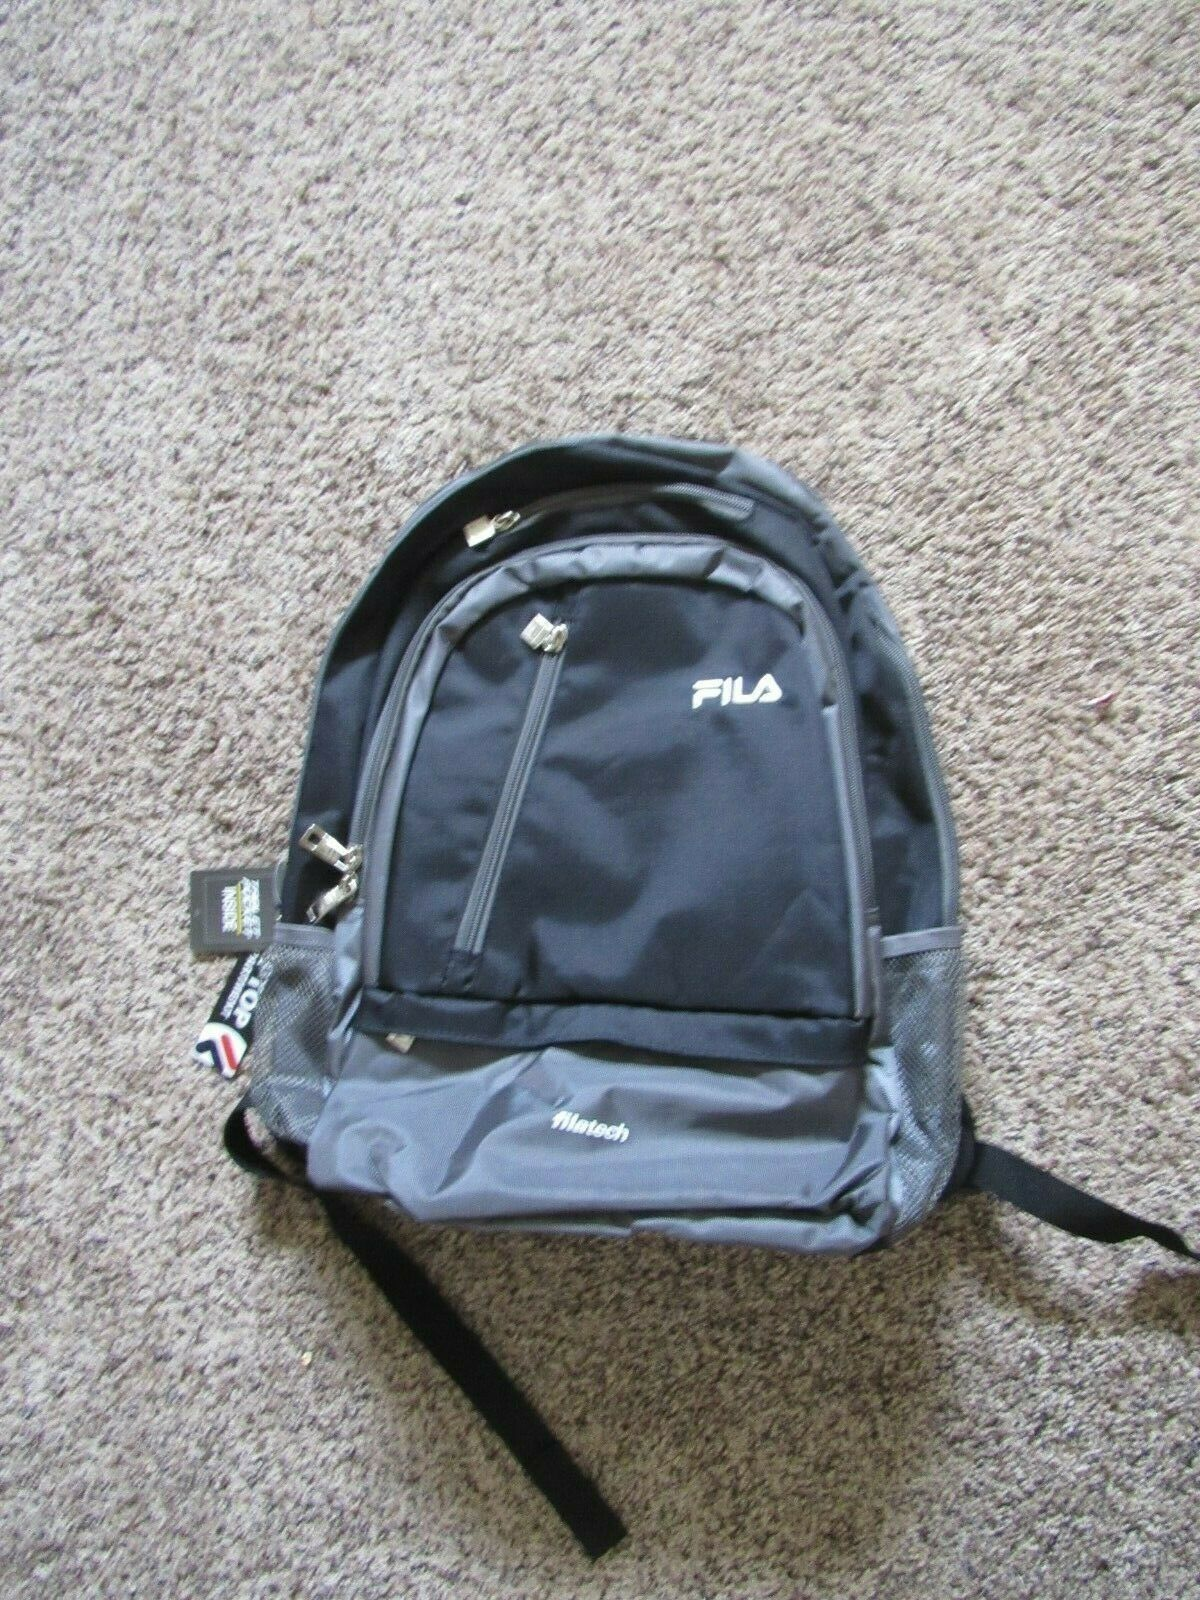 Fila Duel Tablet and Laptop Backpack Business & Laptop Backpack NEW